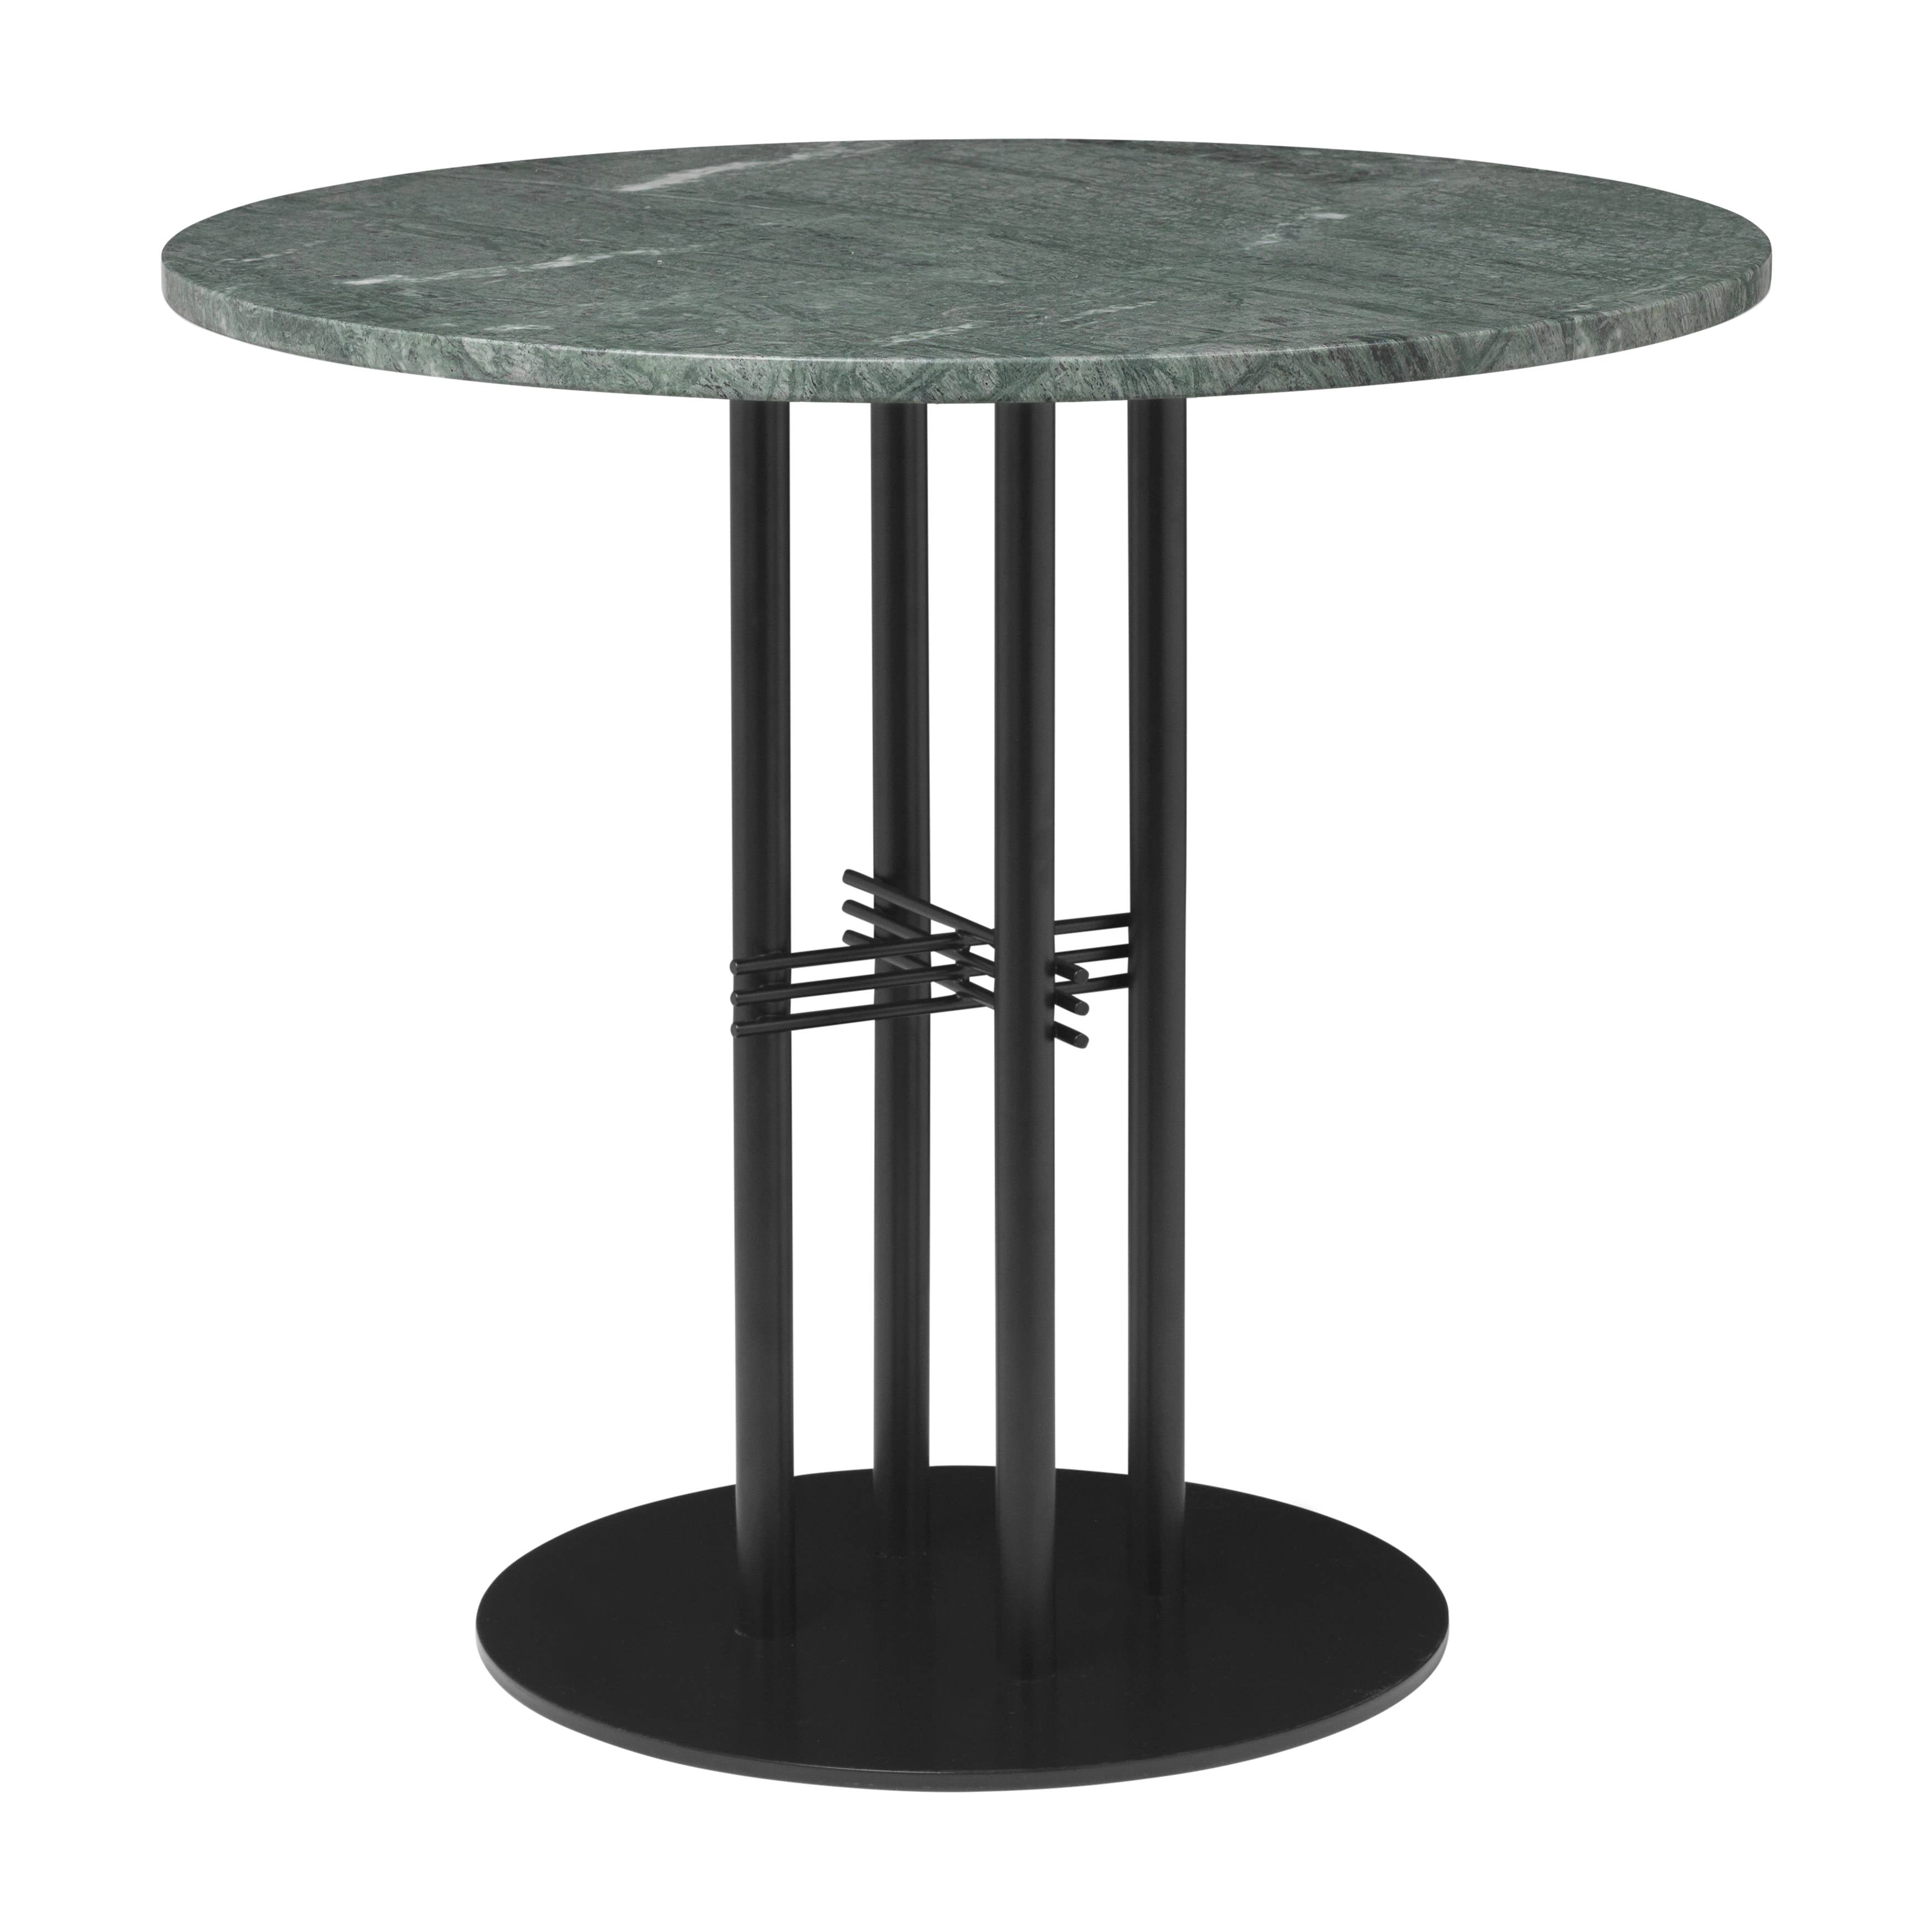 TS Column Dining Table: Small + Black Base + Green Gautemala Marble